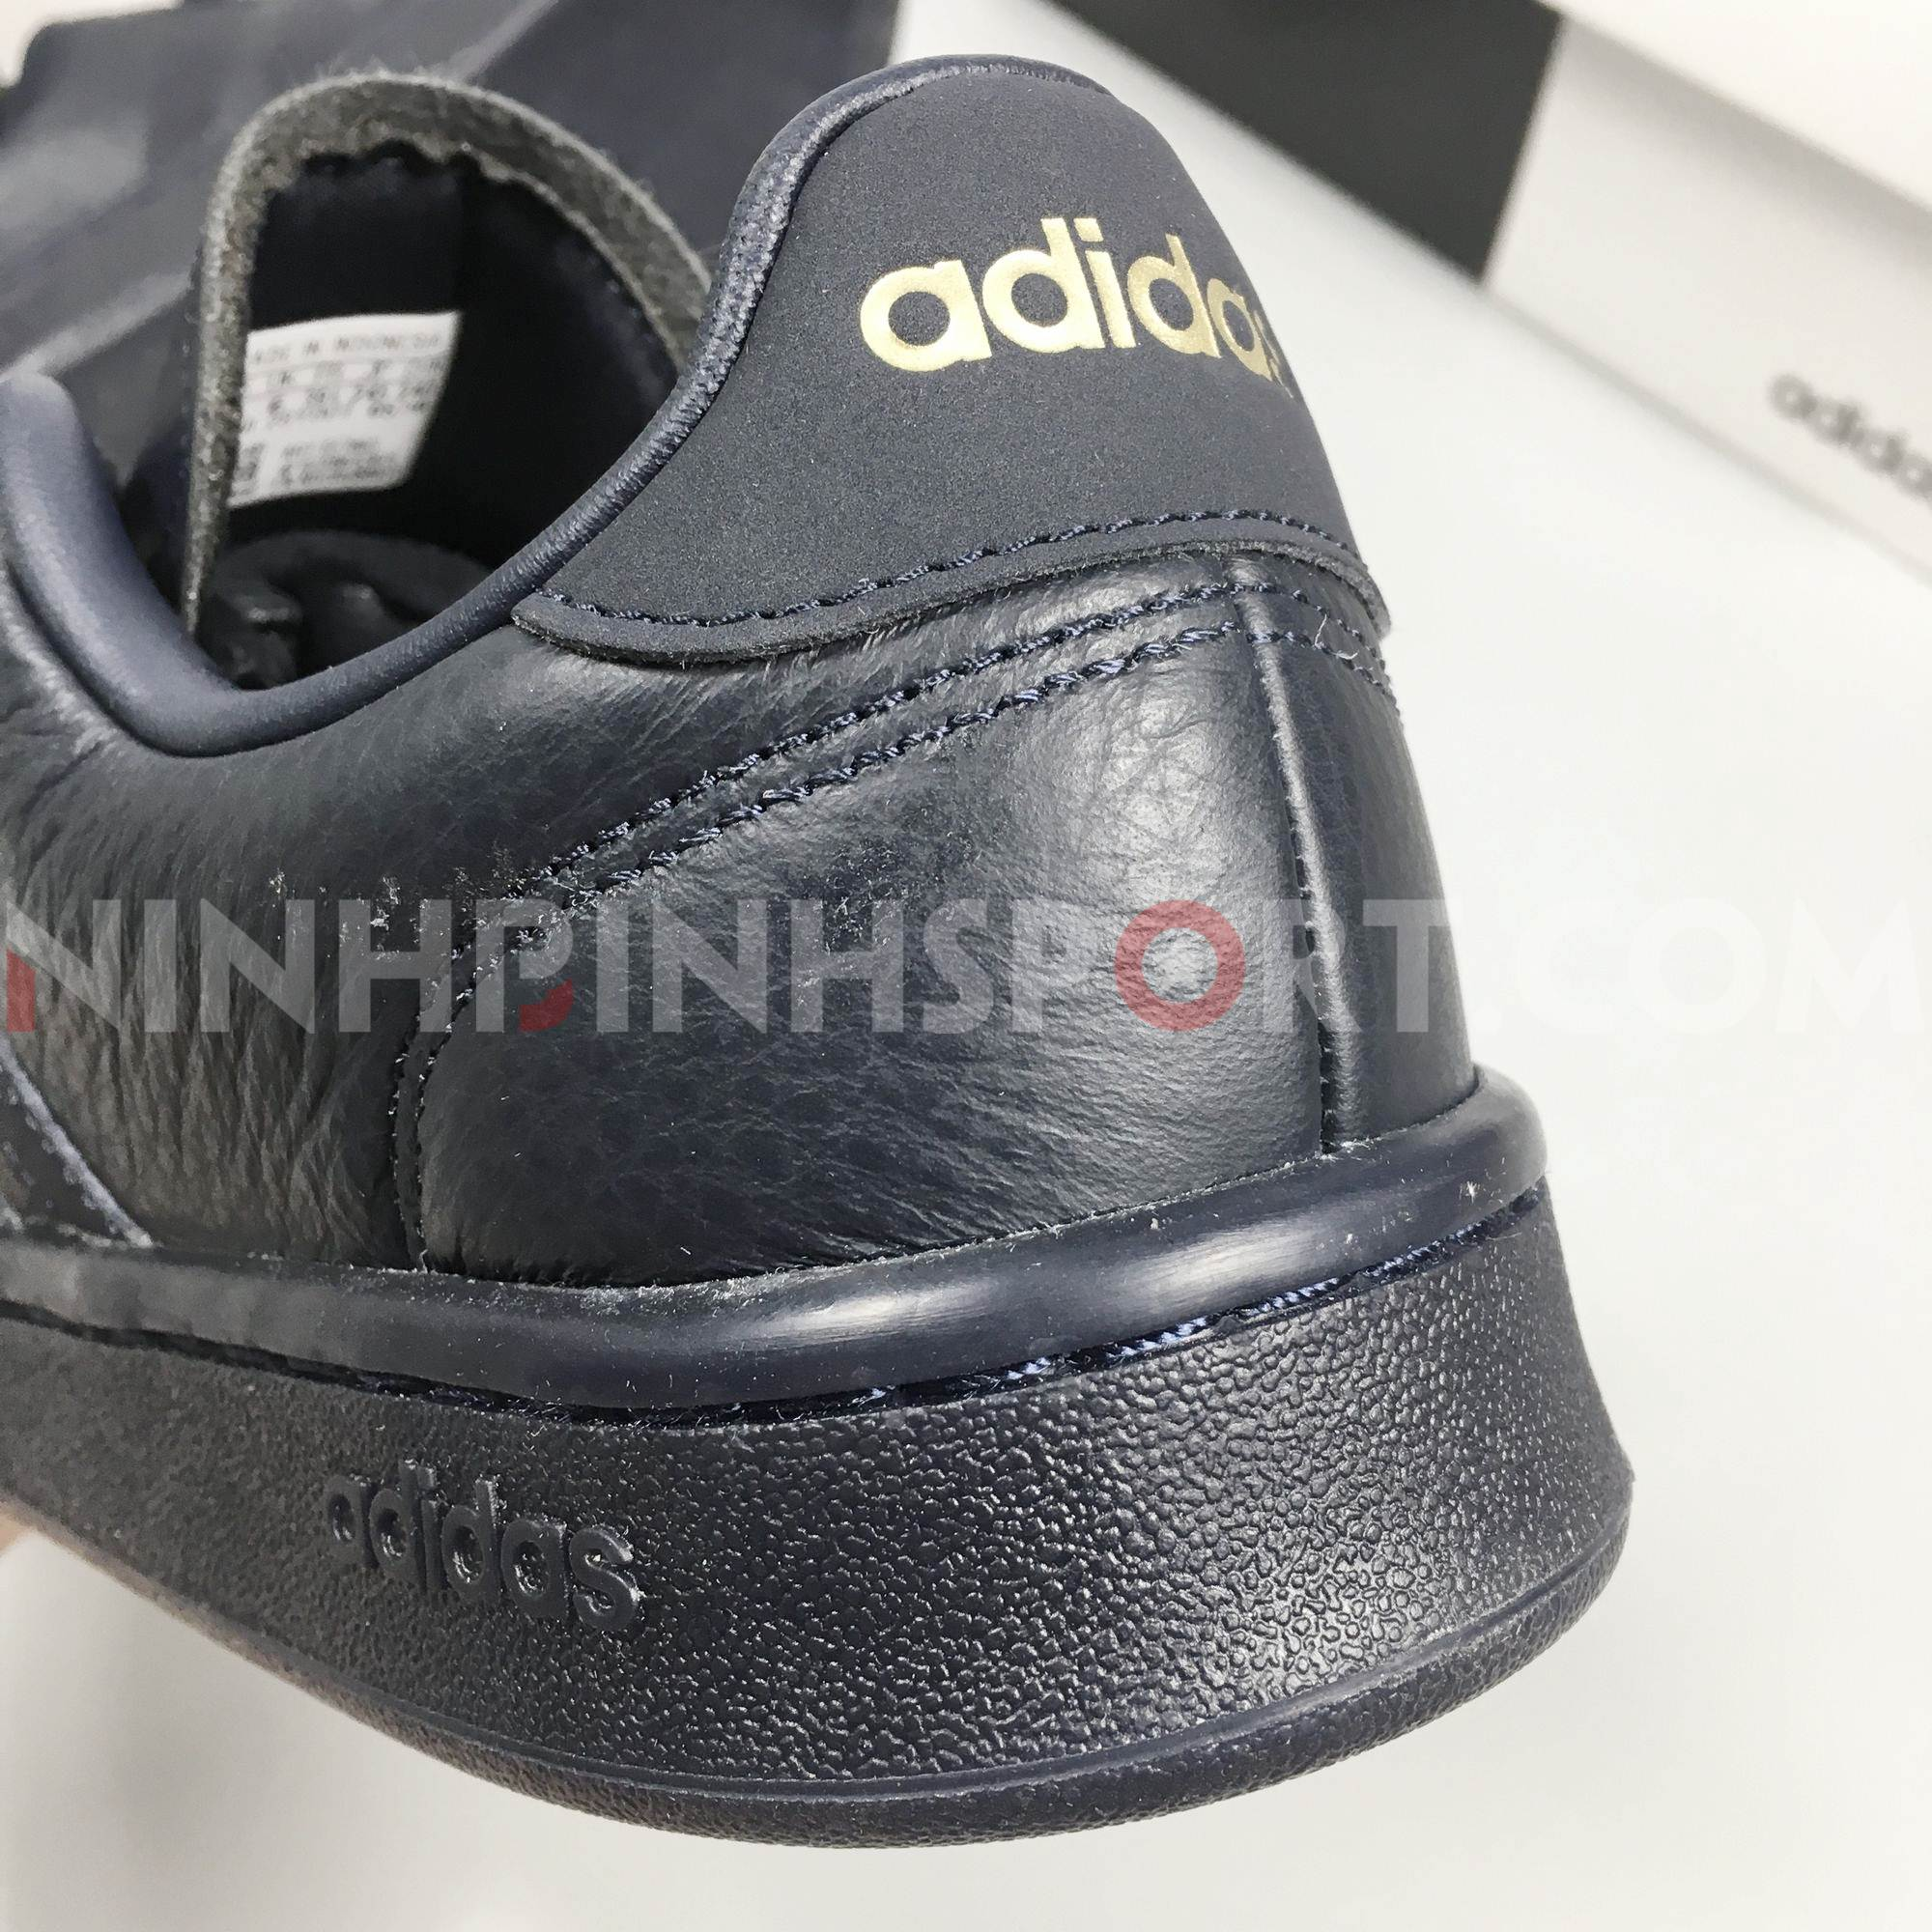 Giầy thể thao nam Adidas Grand Court EE7883